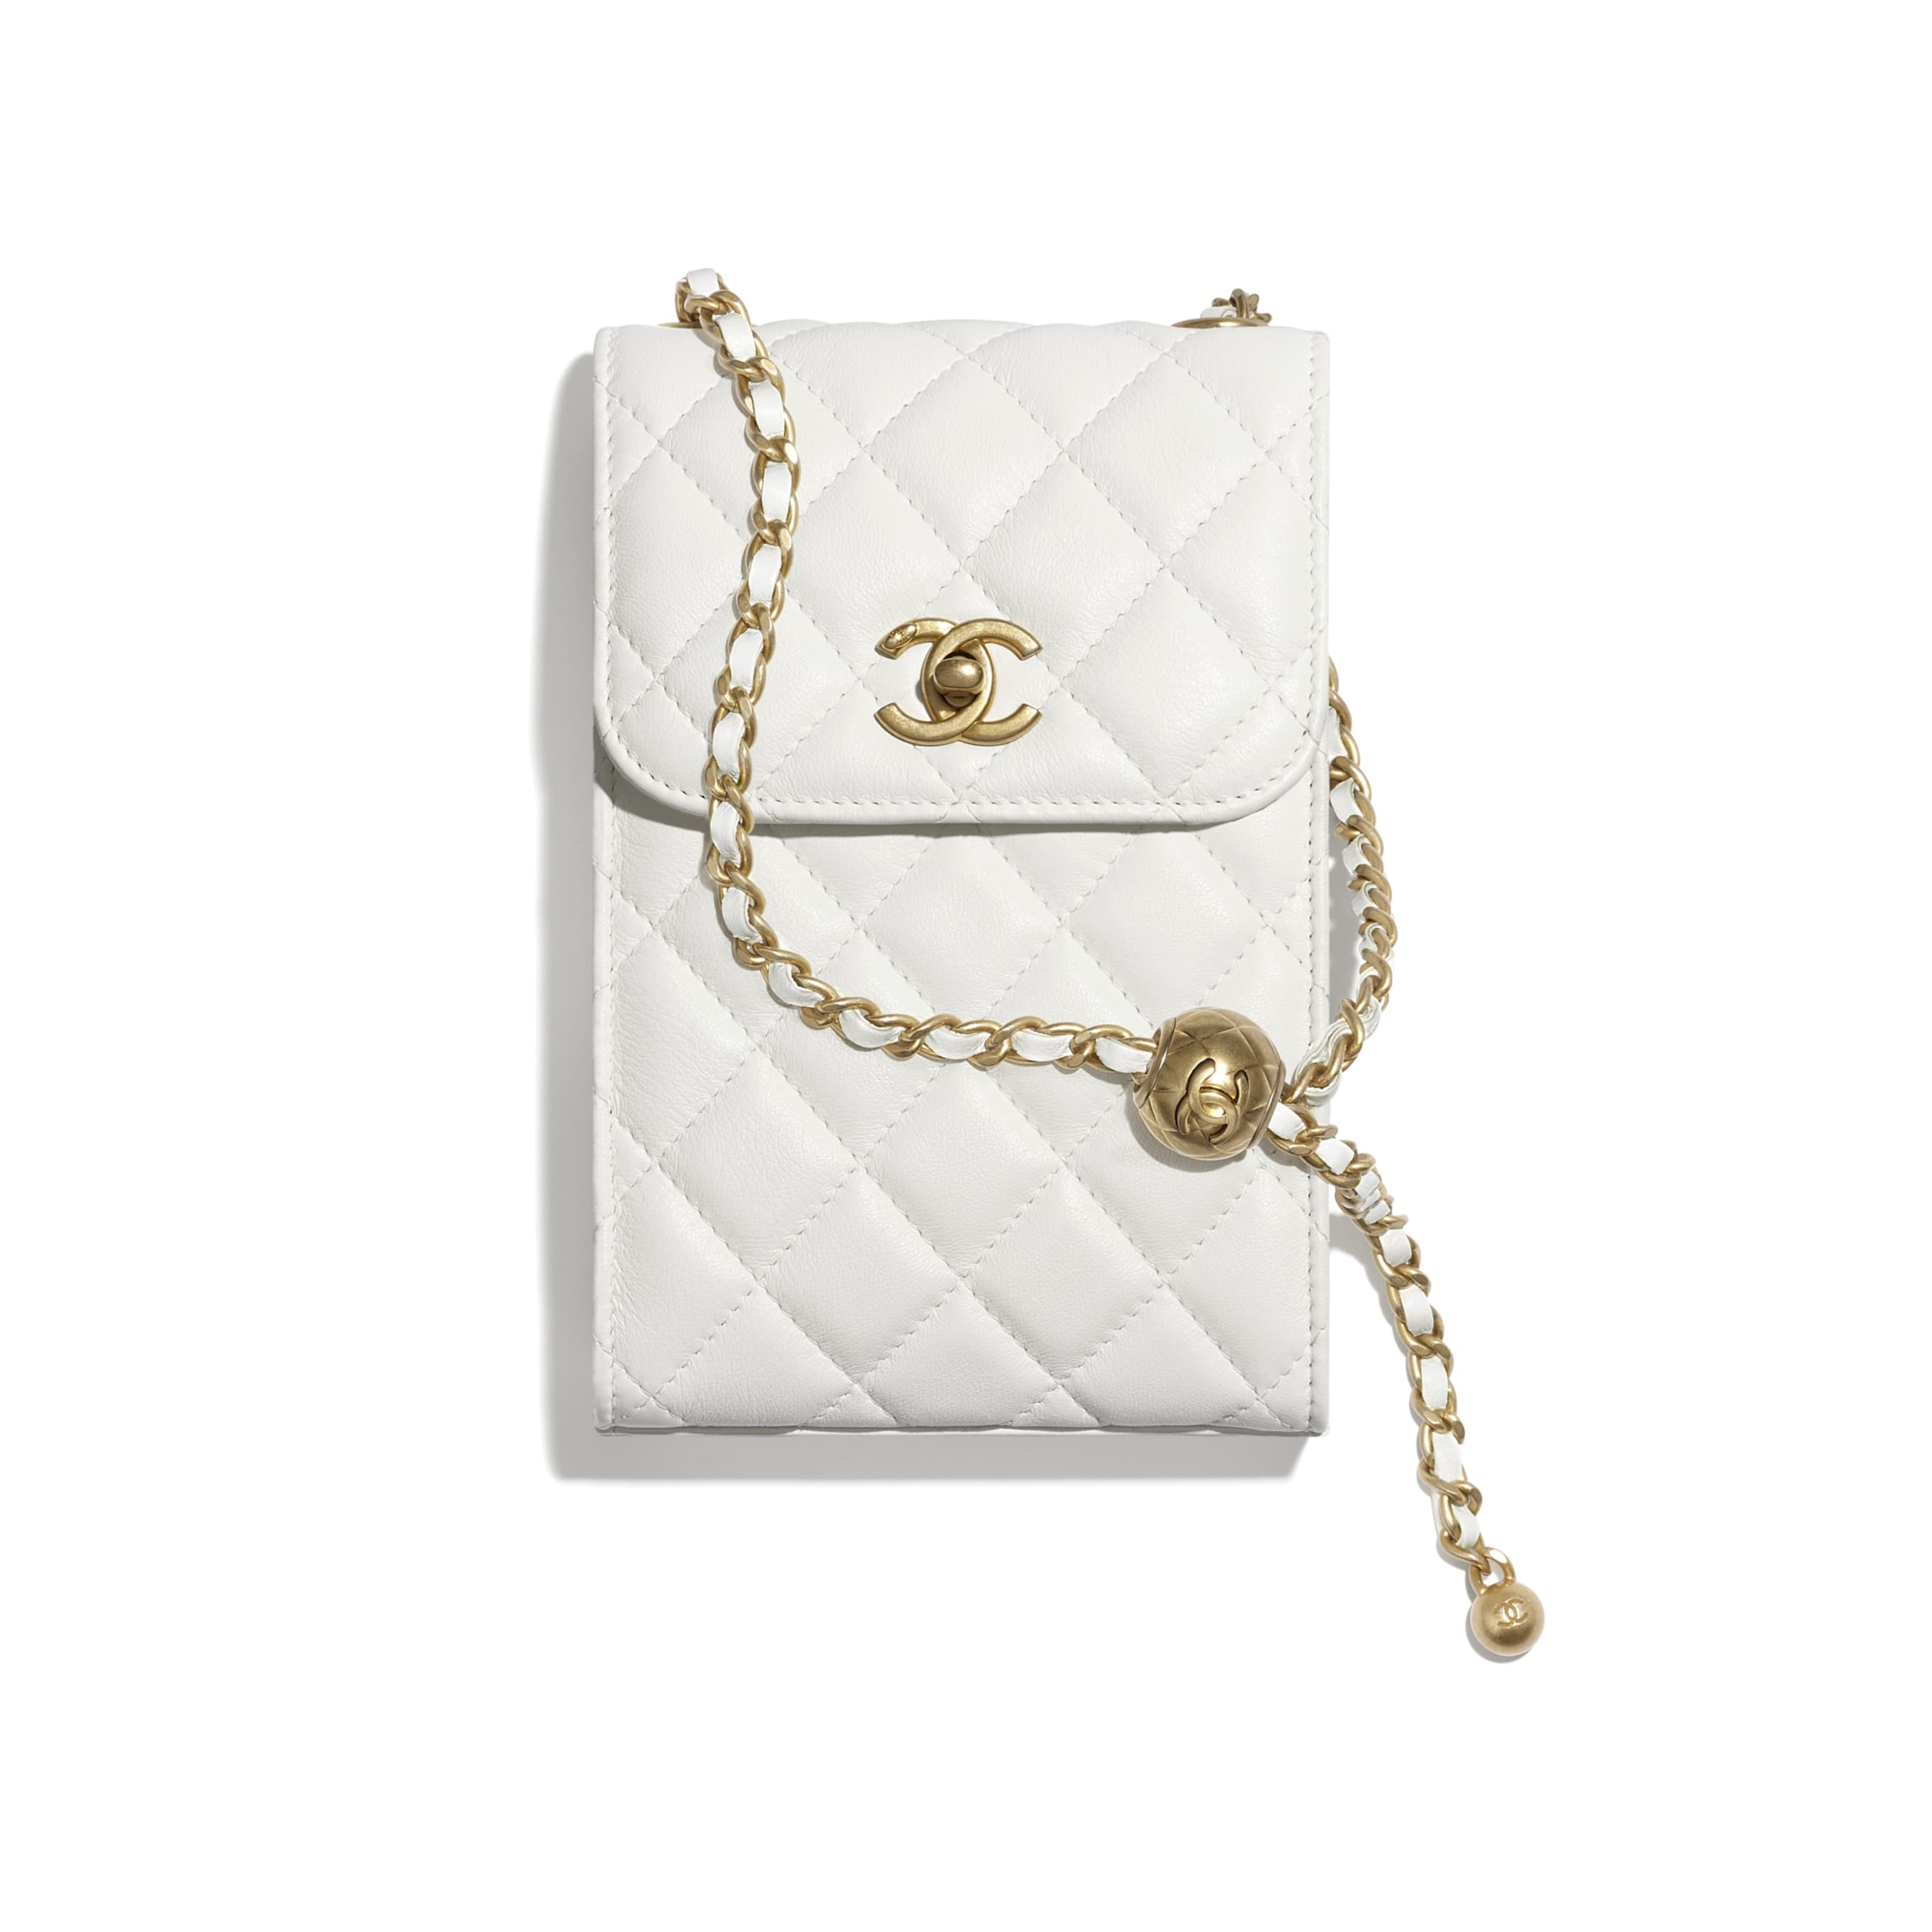 Phone Holder With Chain - White - Lambskin - CHANEL - Default view - see standard sized version